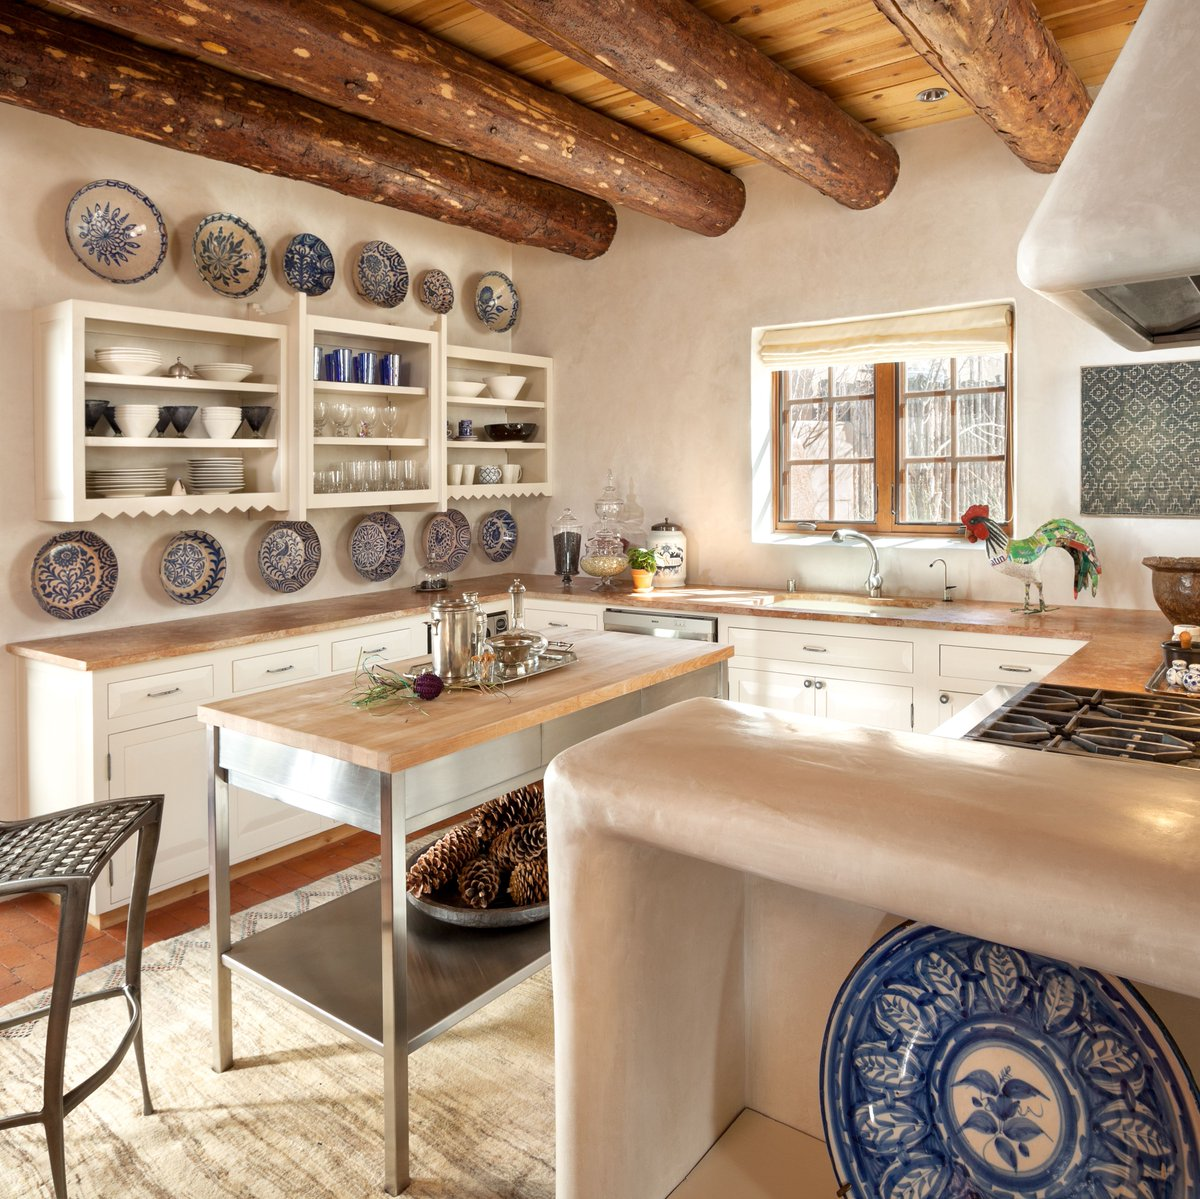 Wood counter tops & wood ceiling match together perfectly in the Santa Fe Historic kitchen.   #kitchen #wood #countertops #interior #design<br>http://pic.twitter.com/lWJlILnEUl